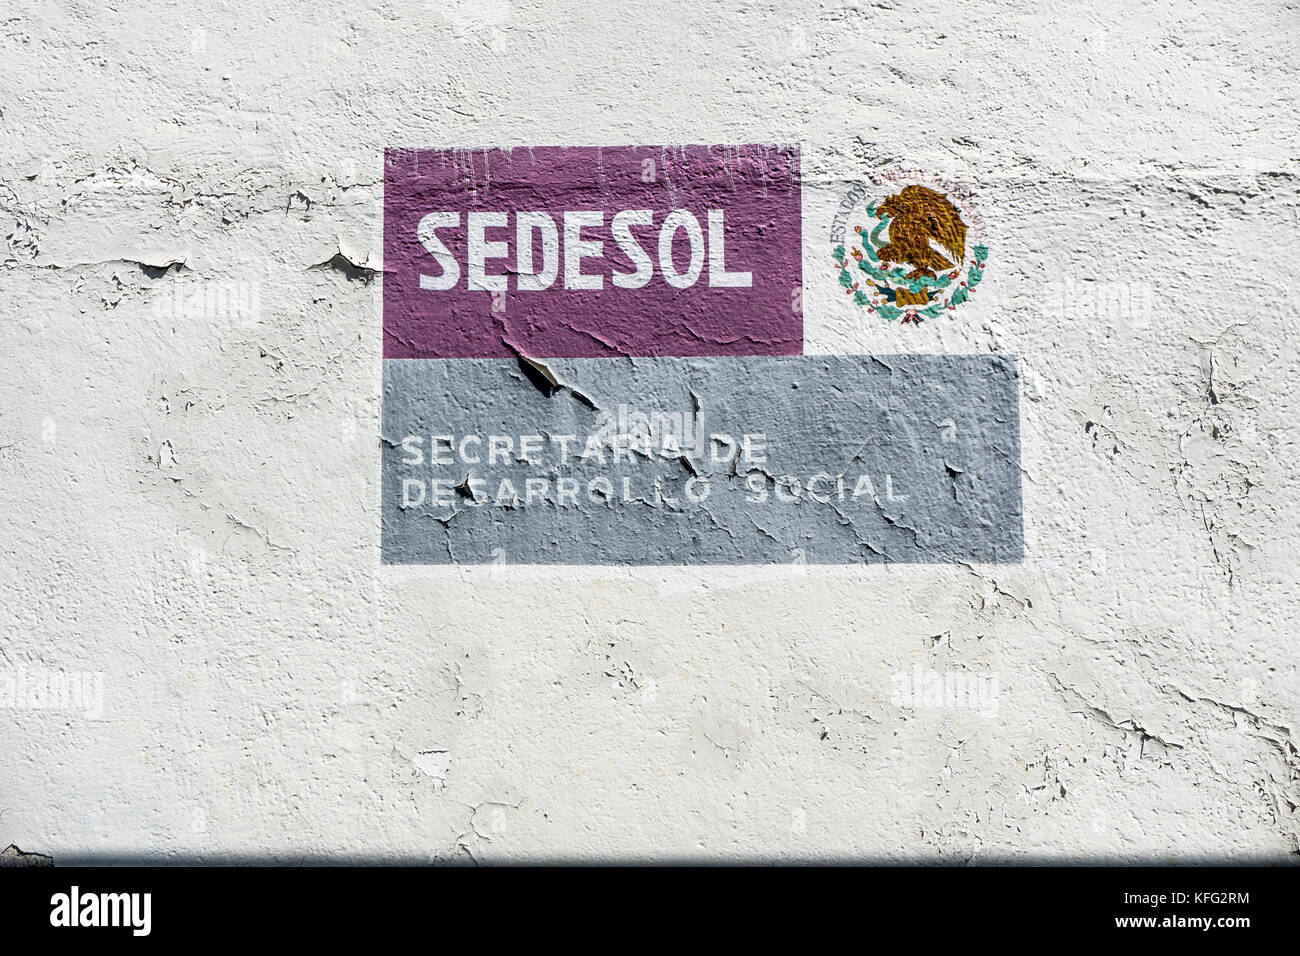 fading logo Mexican Government department concerned with enhancing well being of underclass in urban & rural - Stock Image